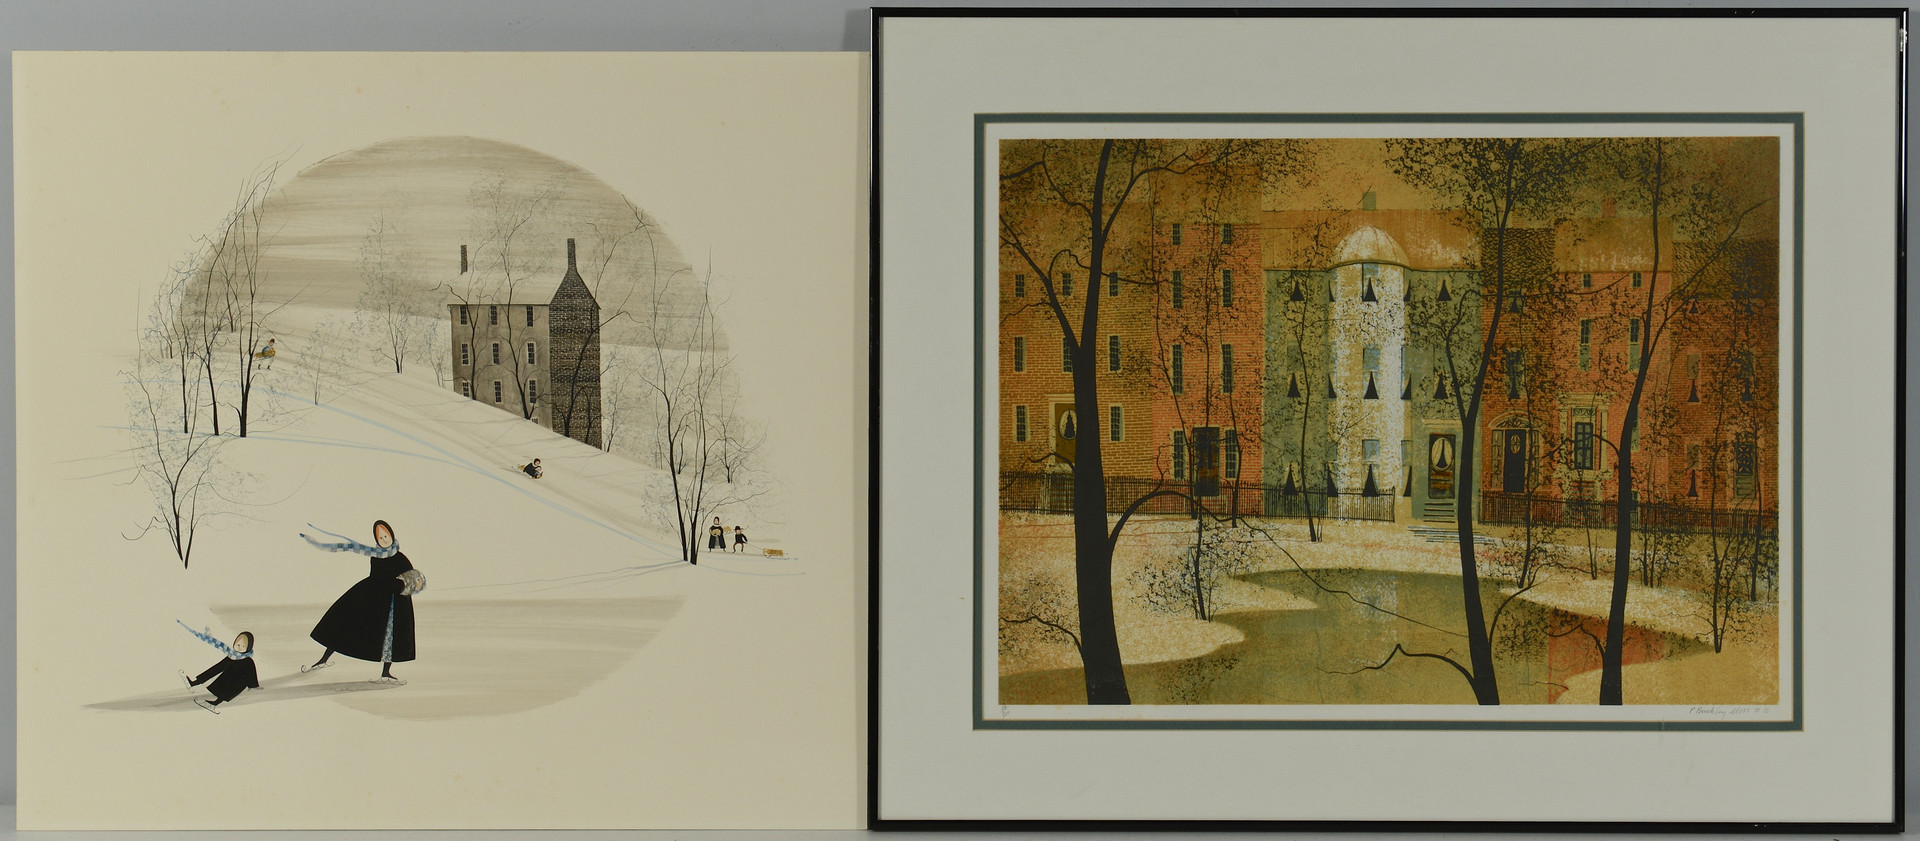 Lot 532: P. Buckley Moss Watercolor & Signed Print, 2 items